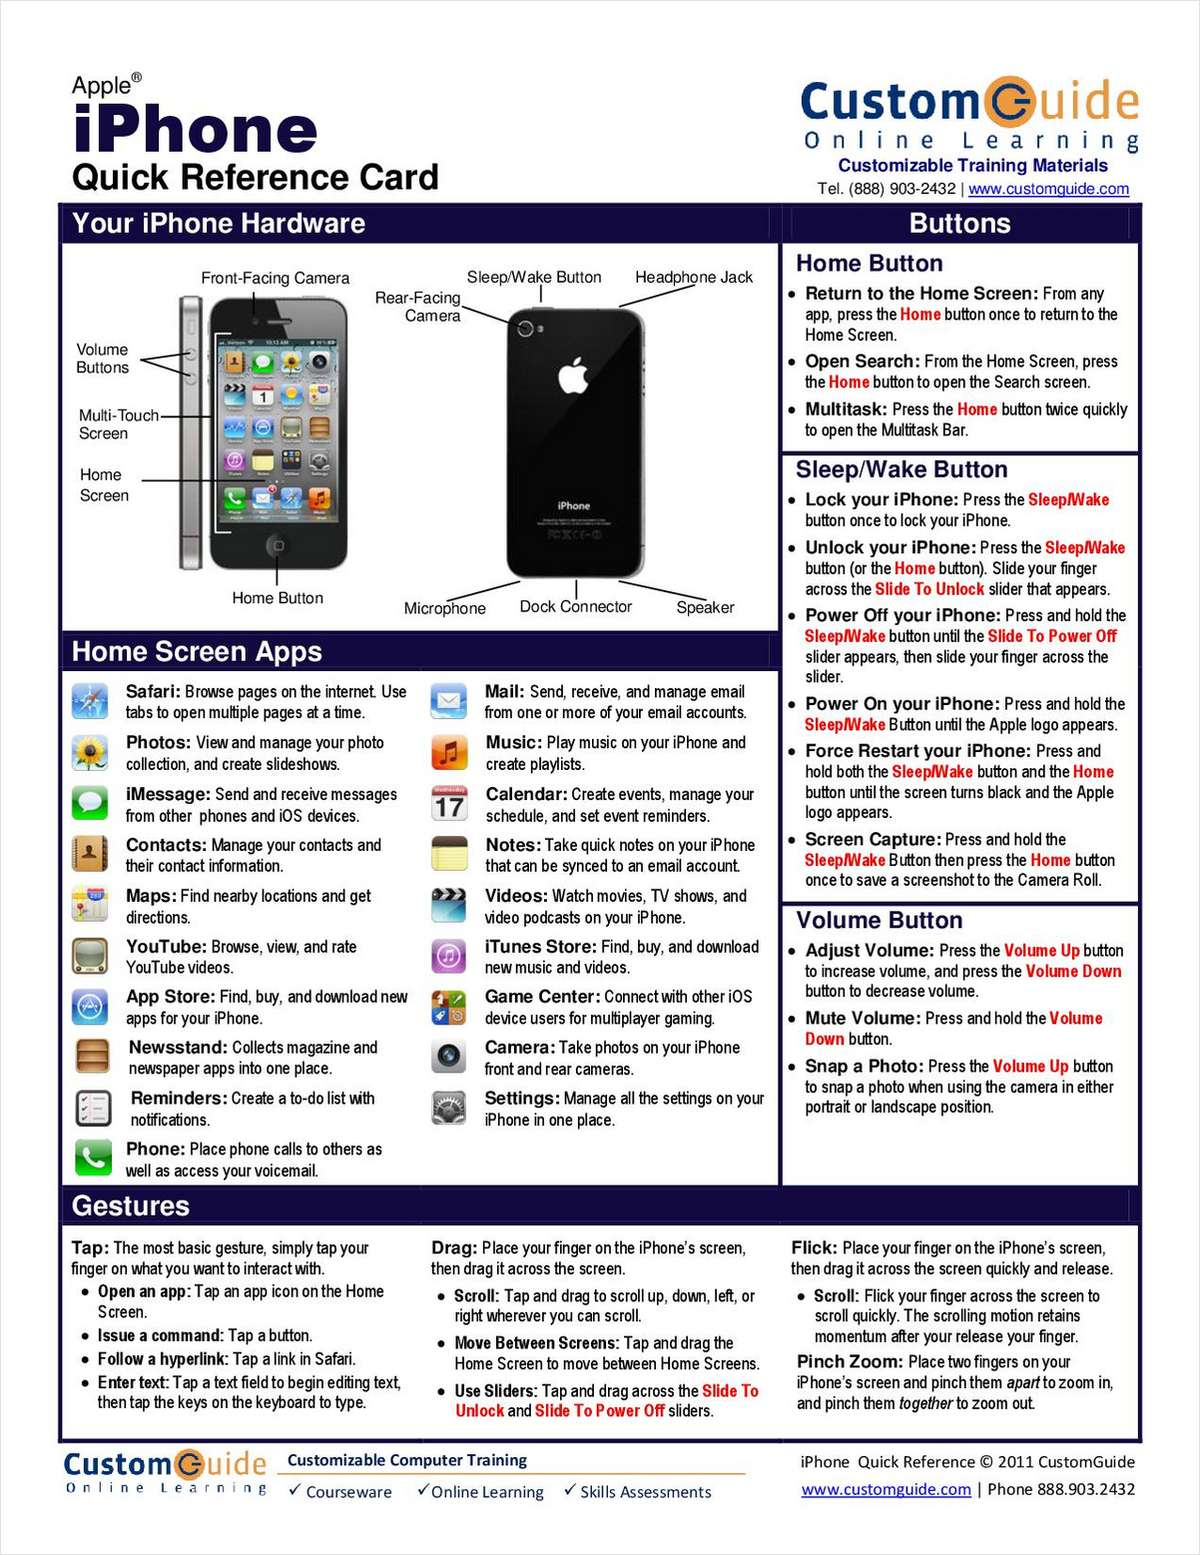 Apple iPhone -- Free Quick Reference Card